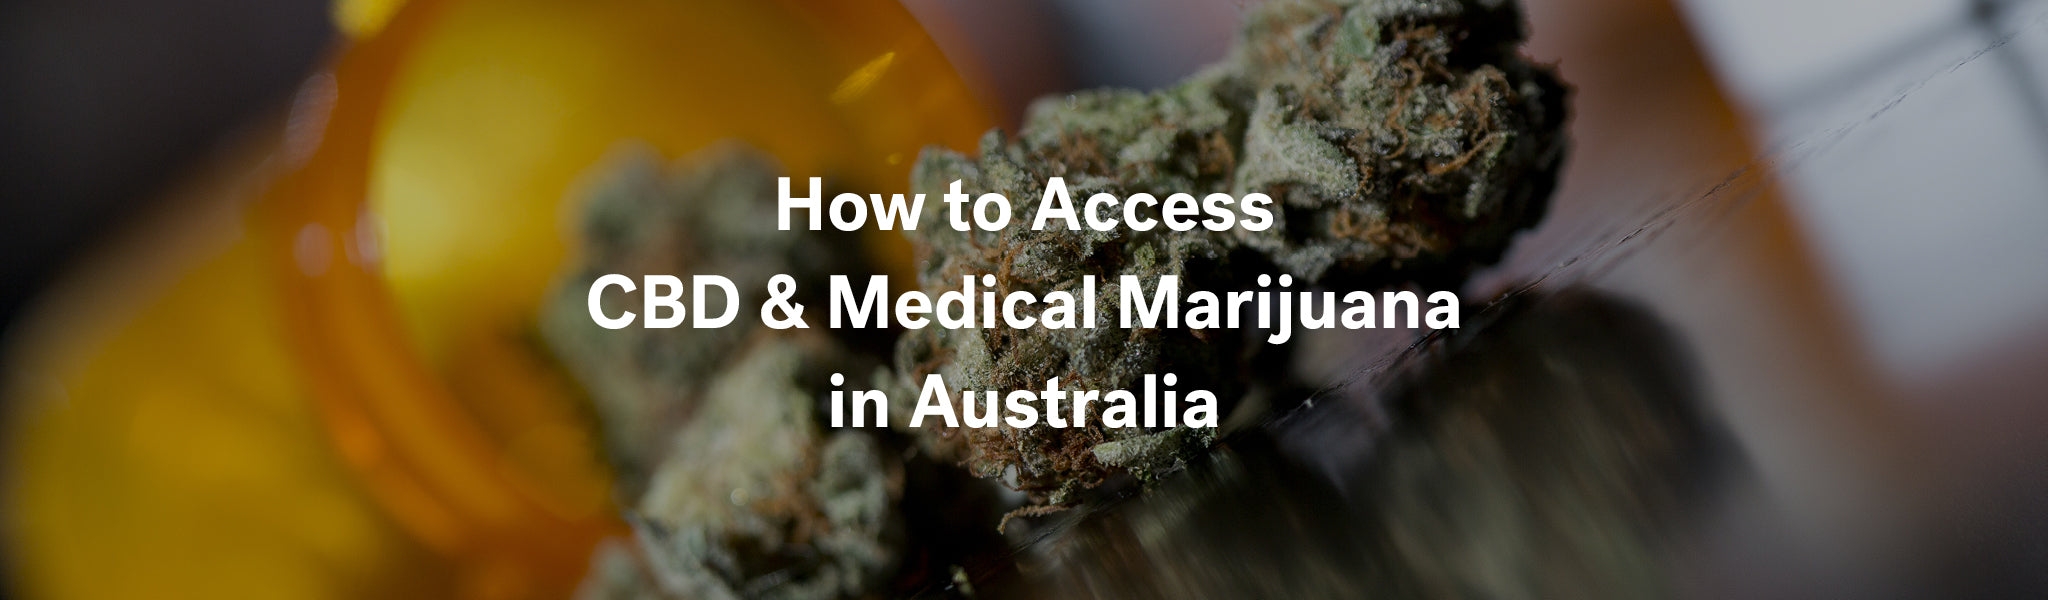 How to Access CBD in Australia